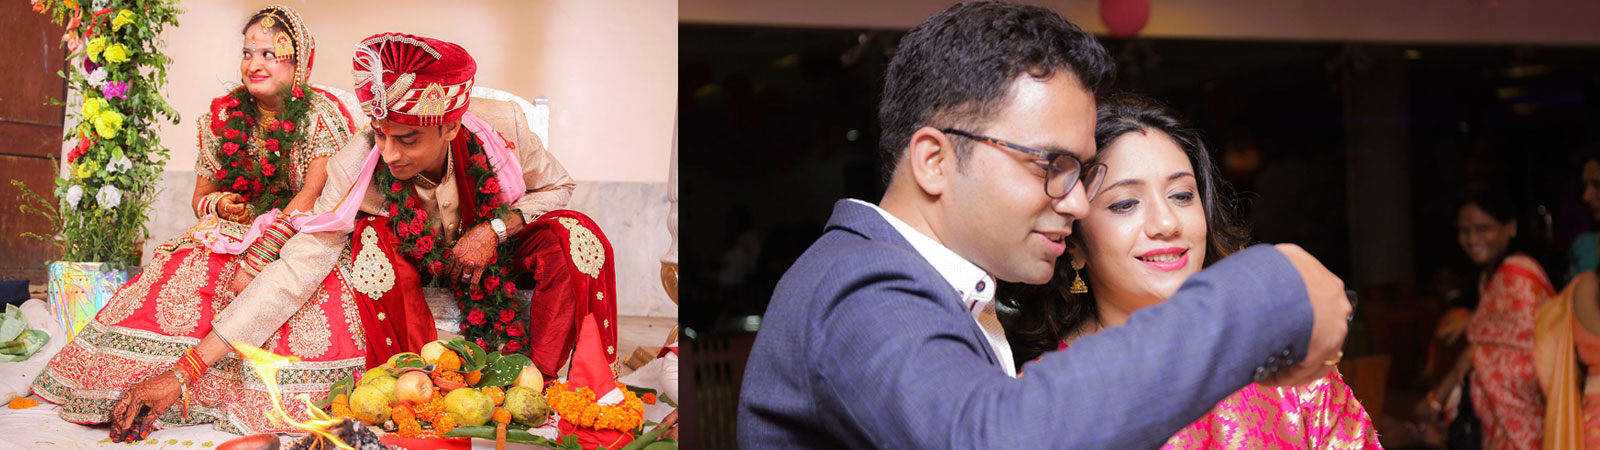 Candid Wedding Photography in Ranchi (Jharkhand)